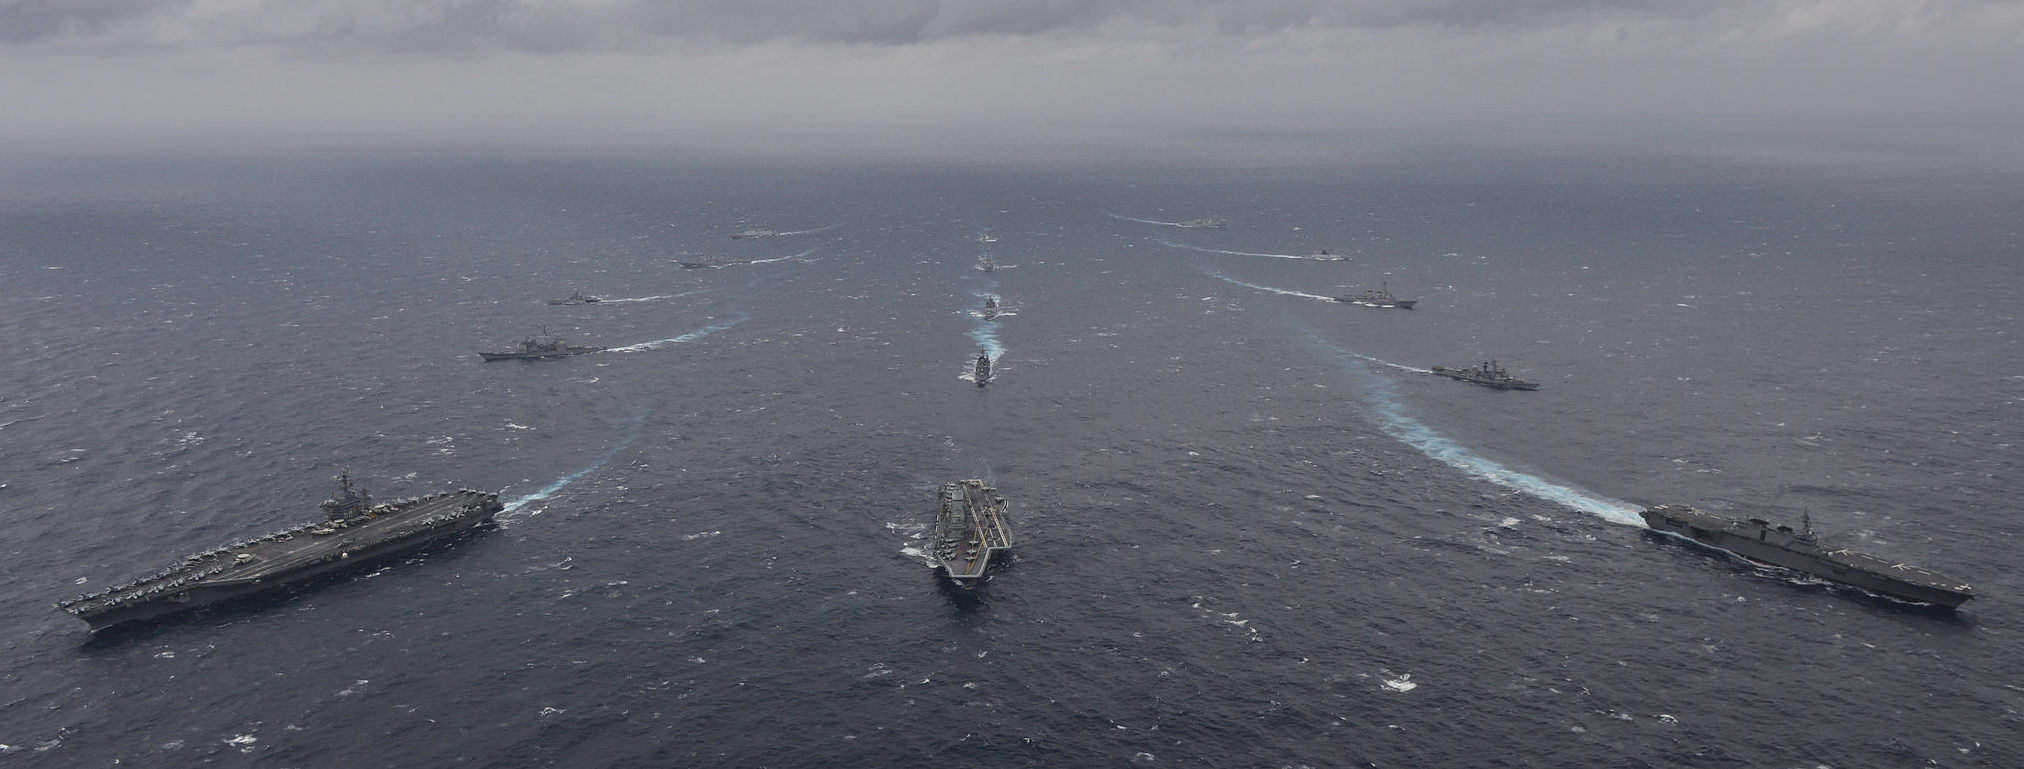 Malabar exercises in the Indian Ocean, June 2017 (Photo: Flickr/US Pacific Command)